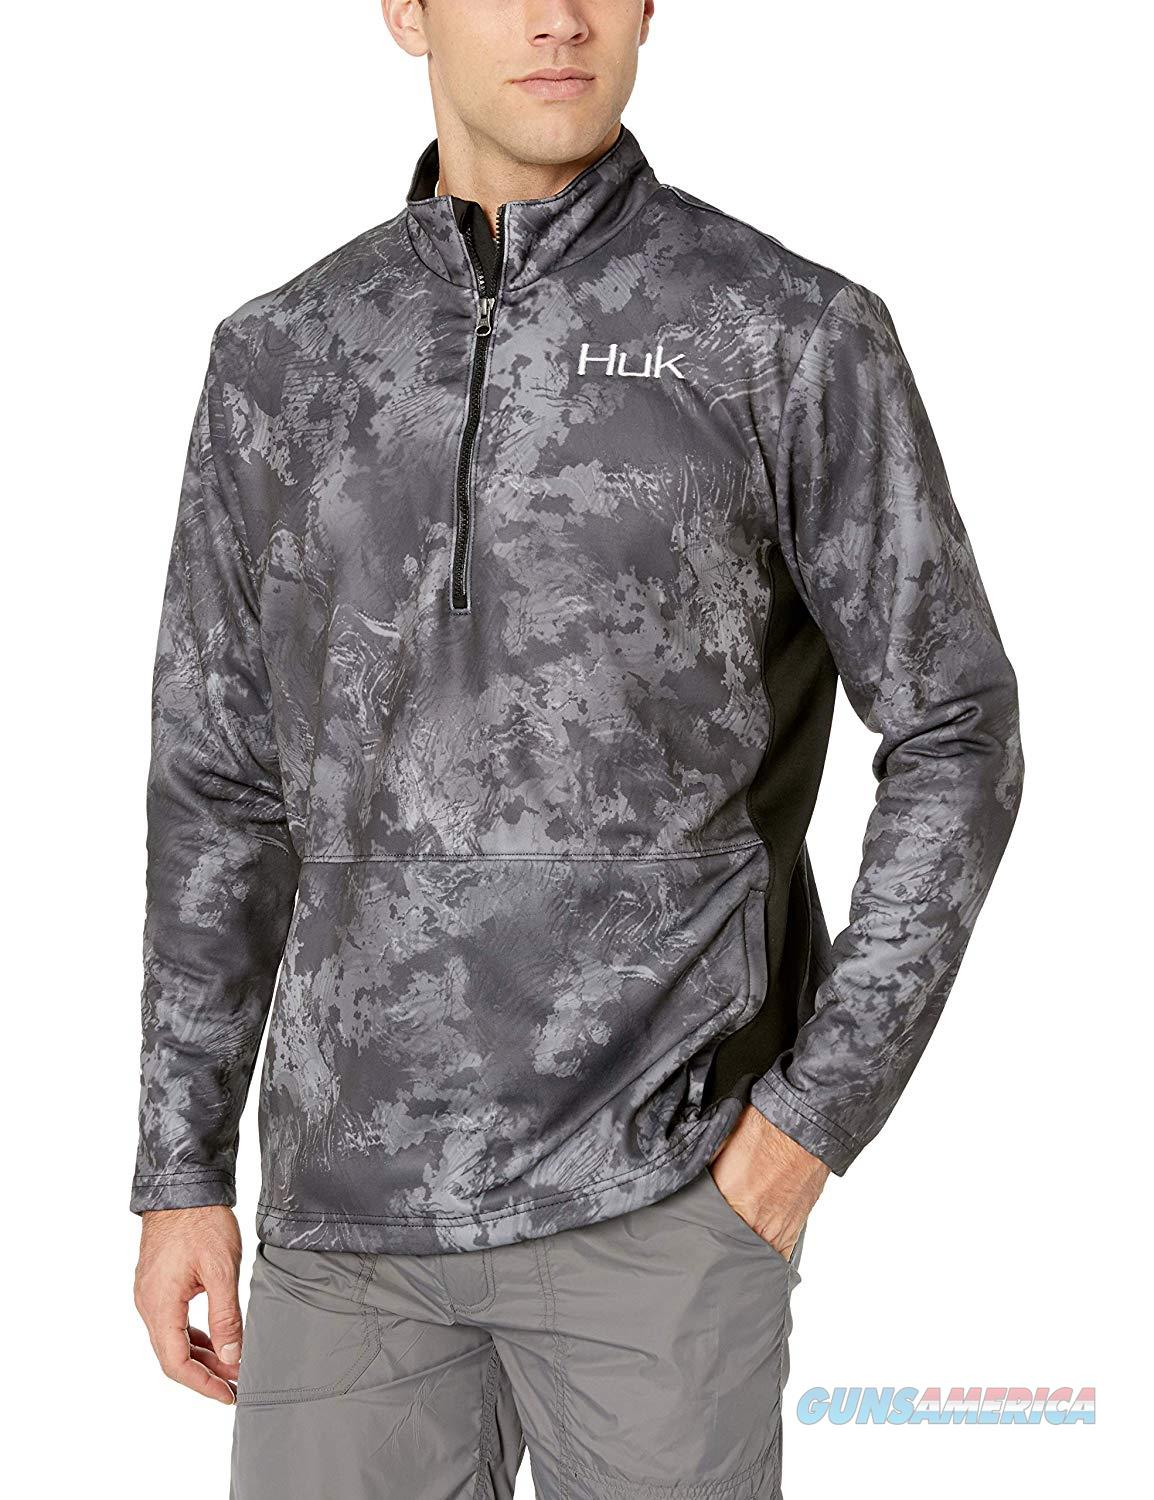 Huk Tidewater 1/4 Zip Night Vision MD  Non-Guns > Hunting Clothing and Equipment > Clothing > Shirts